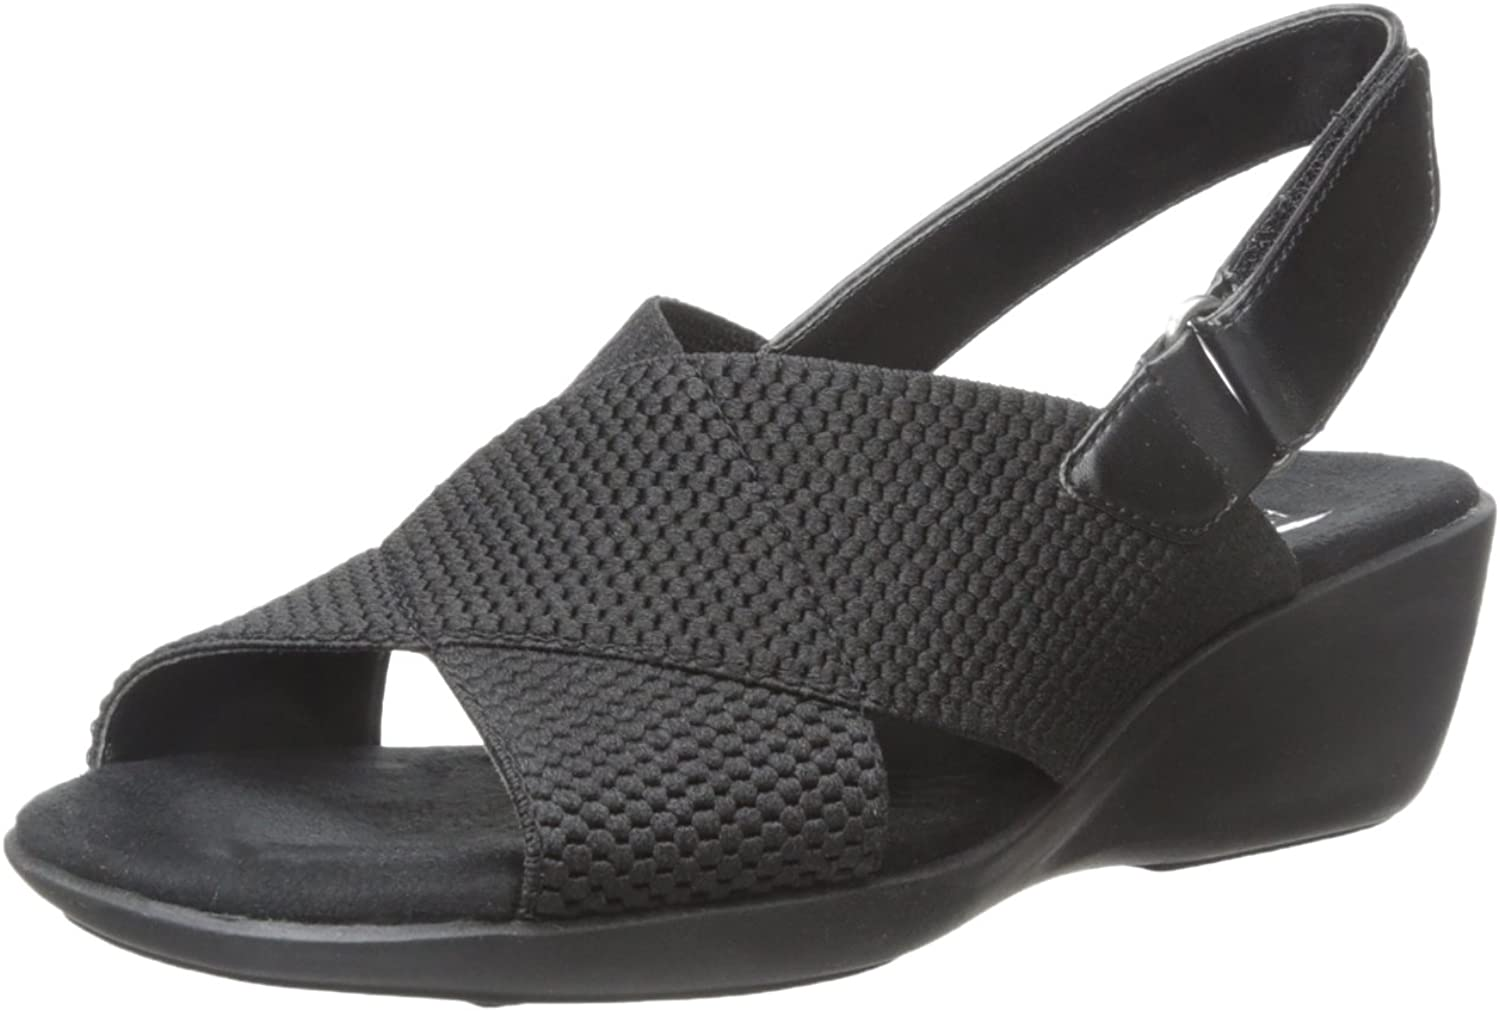 Aerosoles Women's Badlands Wedge Sandal Black